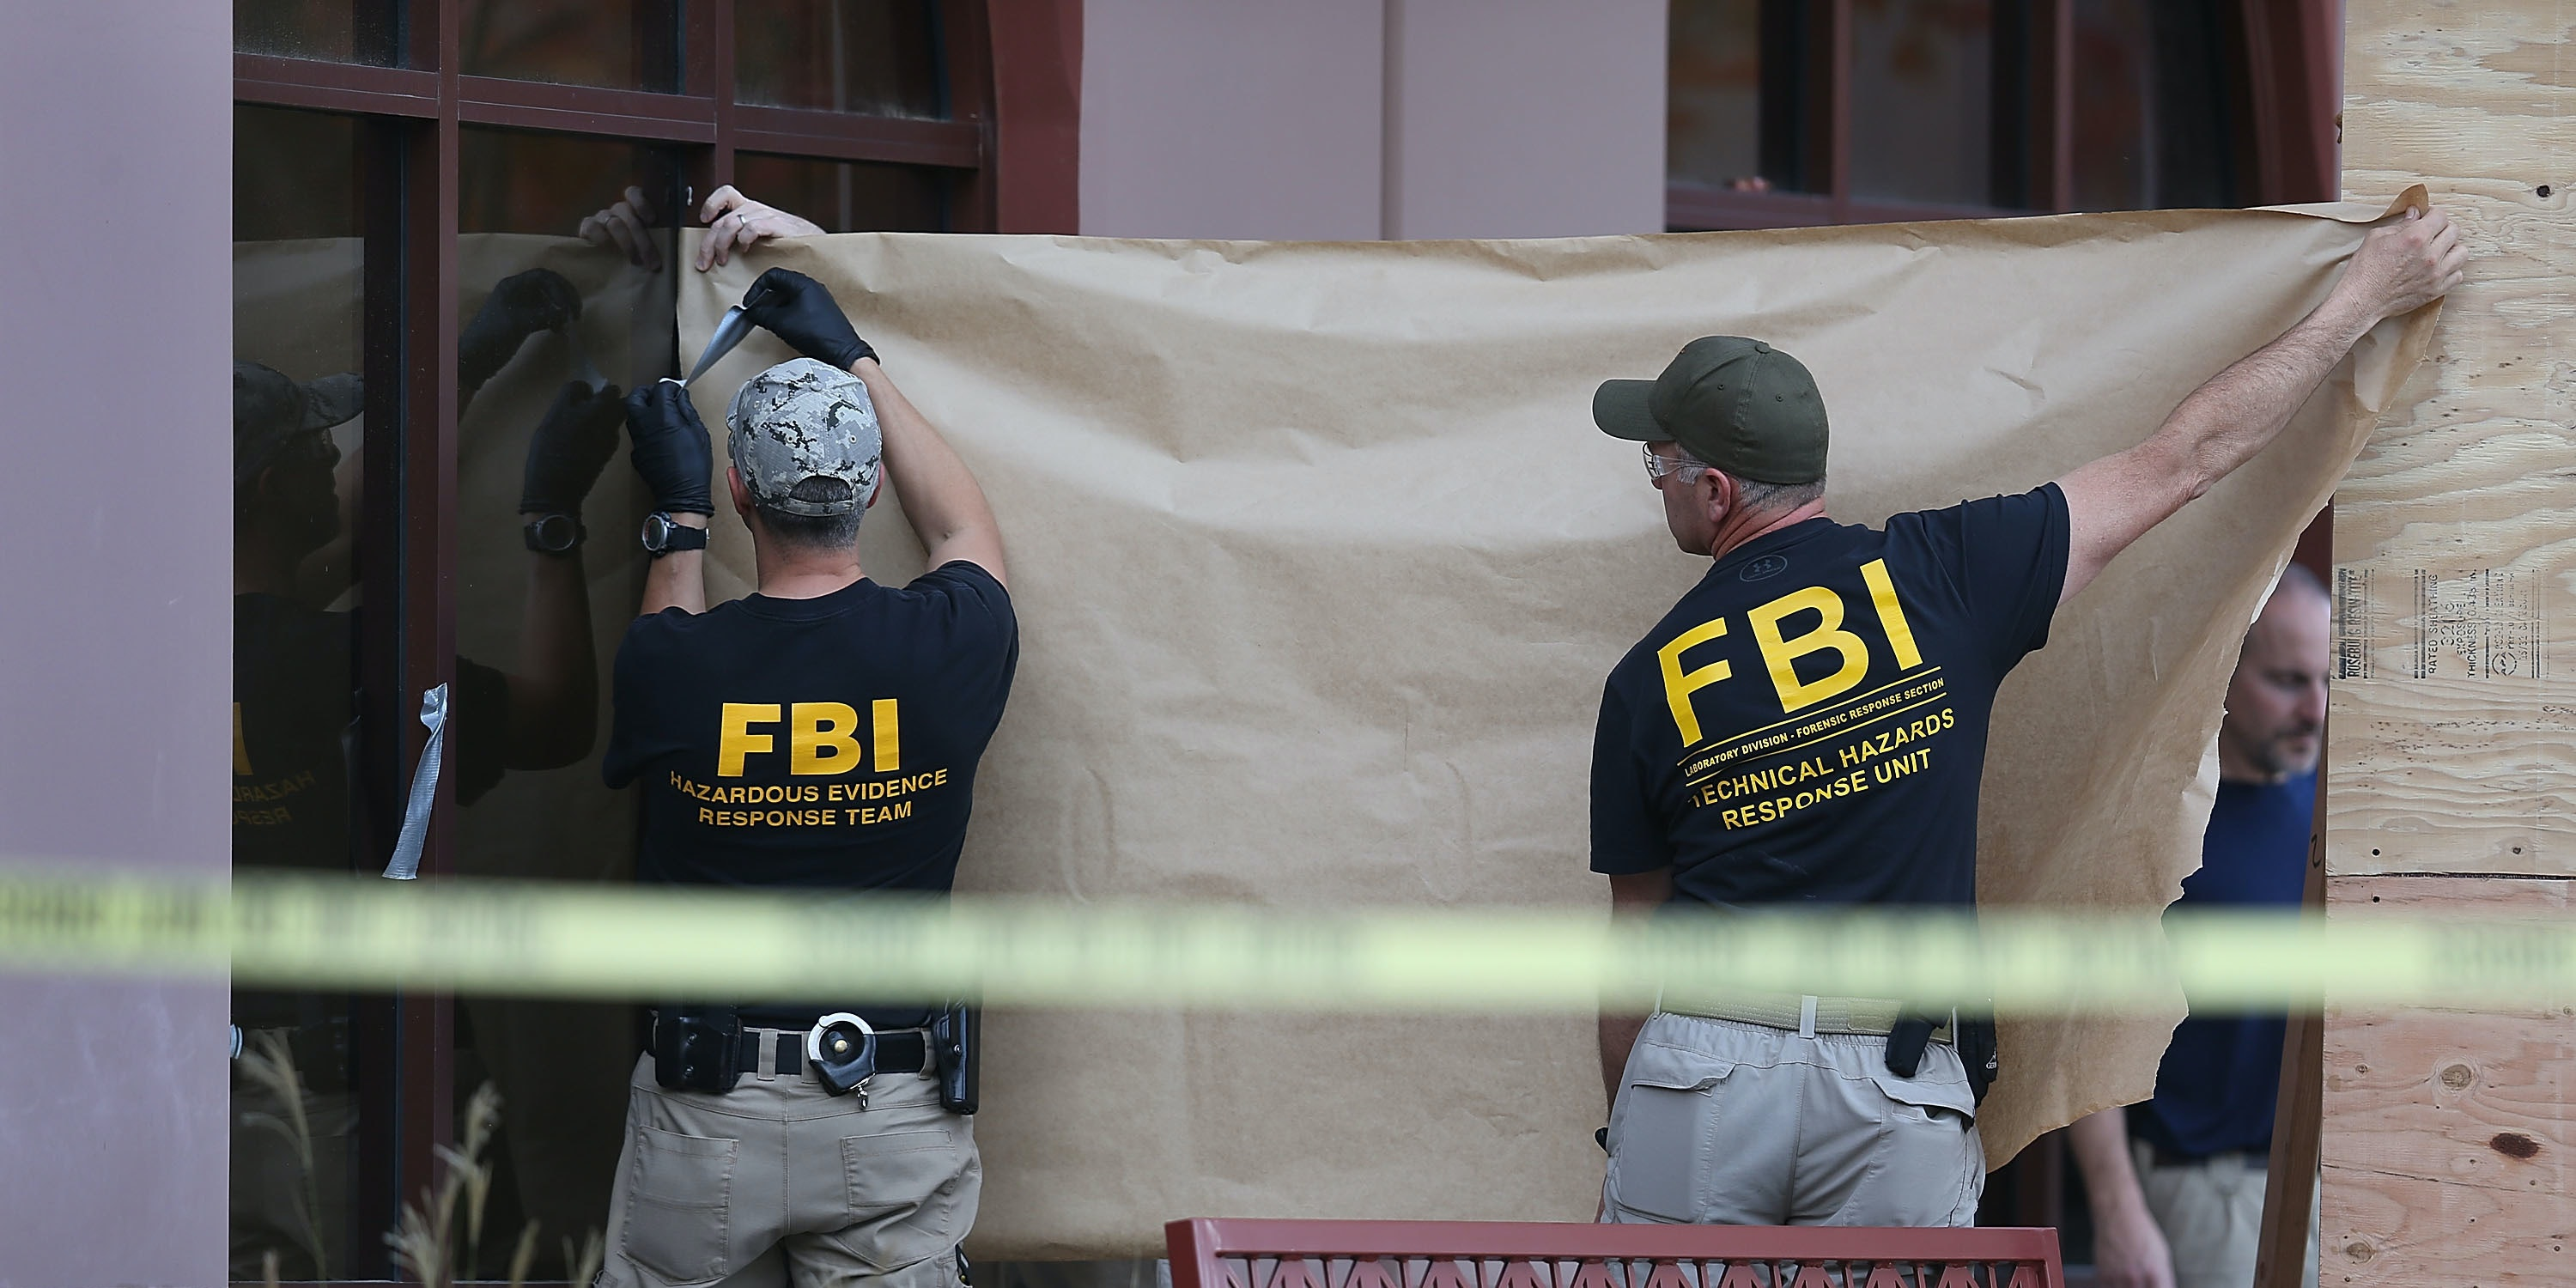 FBI agents put up a screen to block the view of onlookers as they investigate the building at the Inland Regional Center were 14 people were killed on December 7, 2015 in San Bernardino, California.